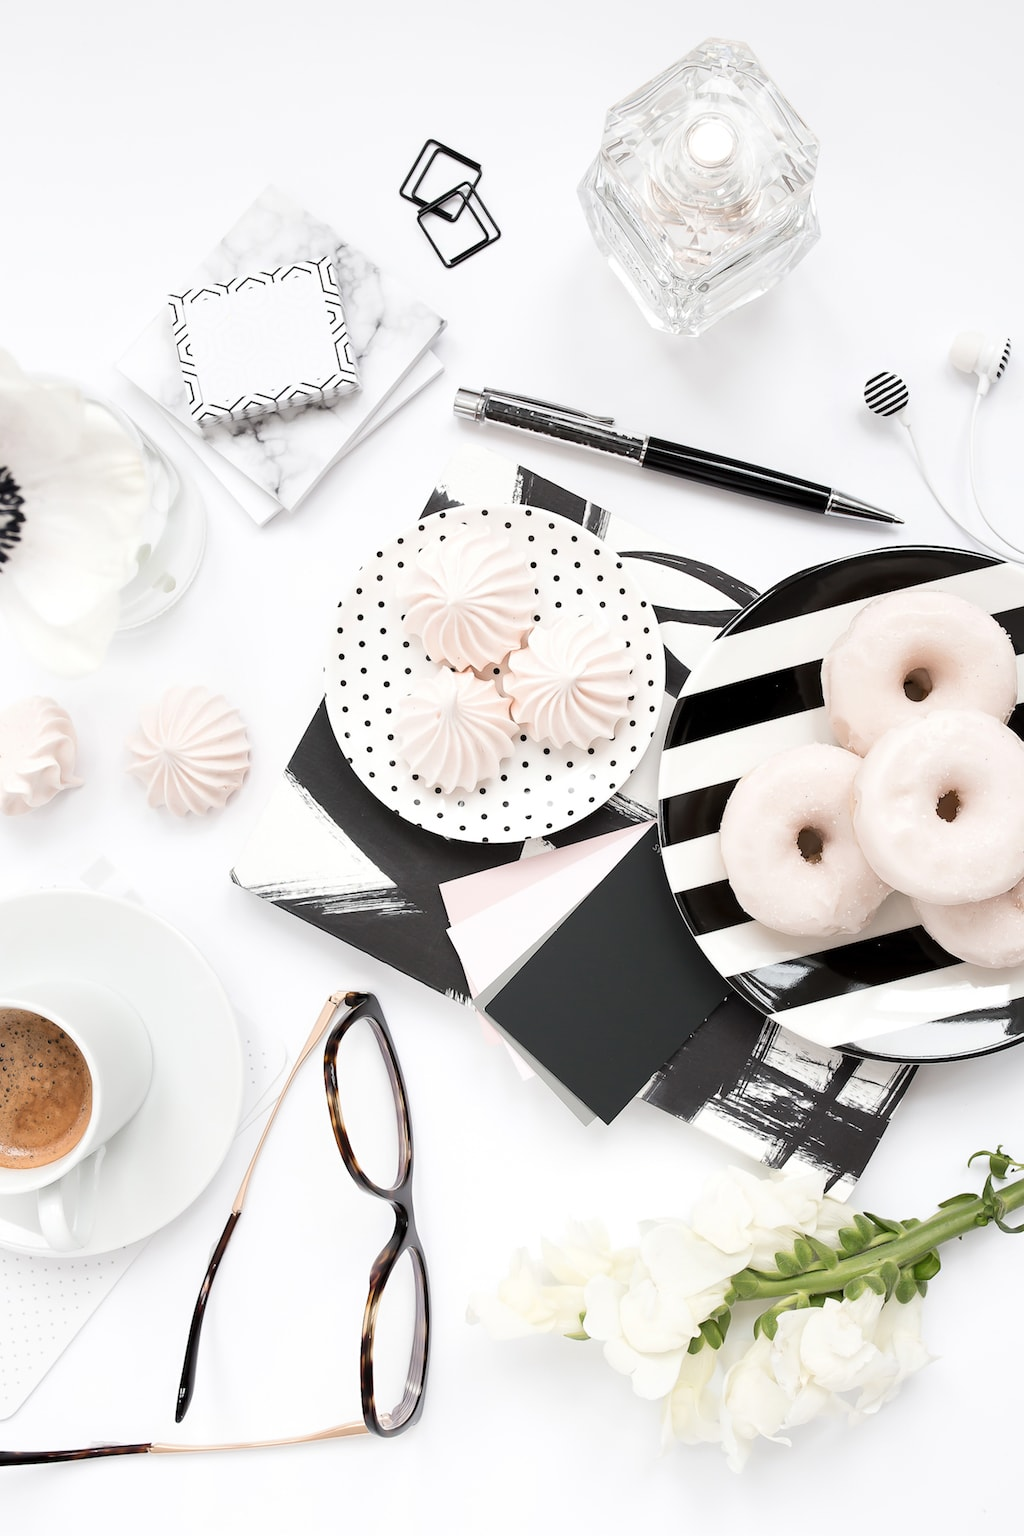 Coffee, flowers, donuts, and perfume flatlay.